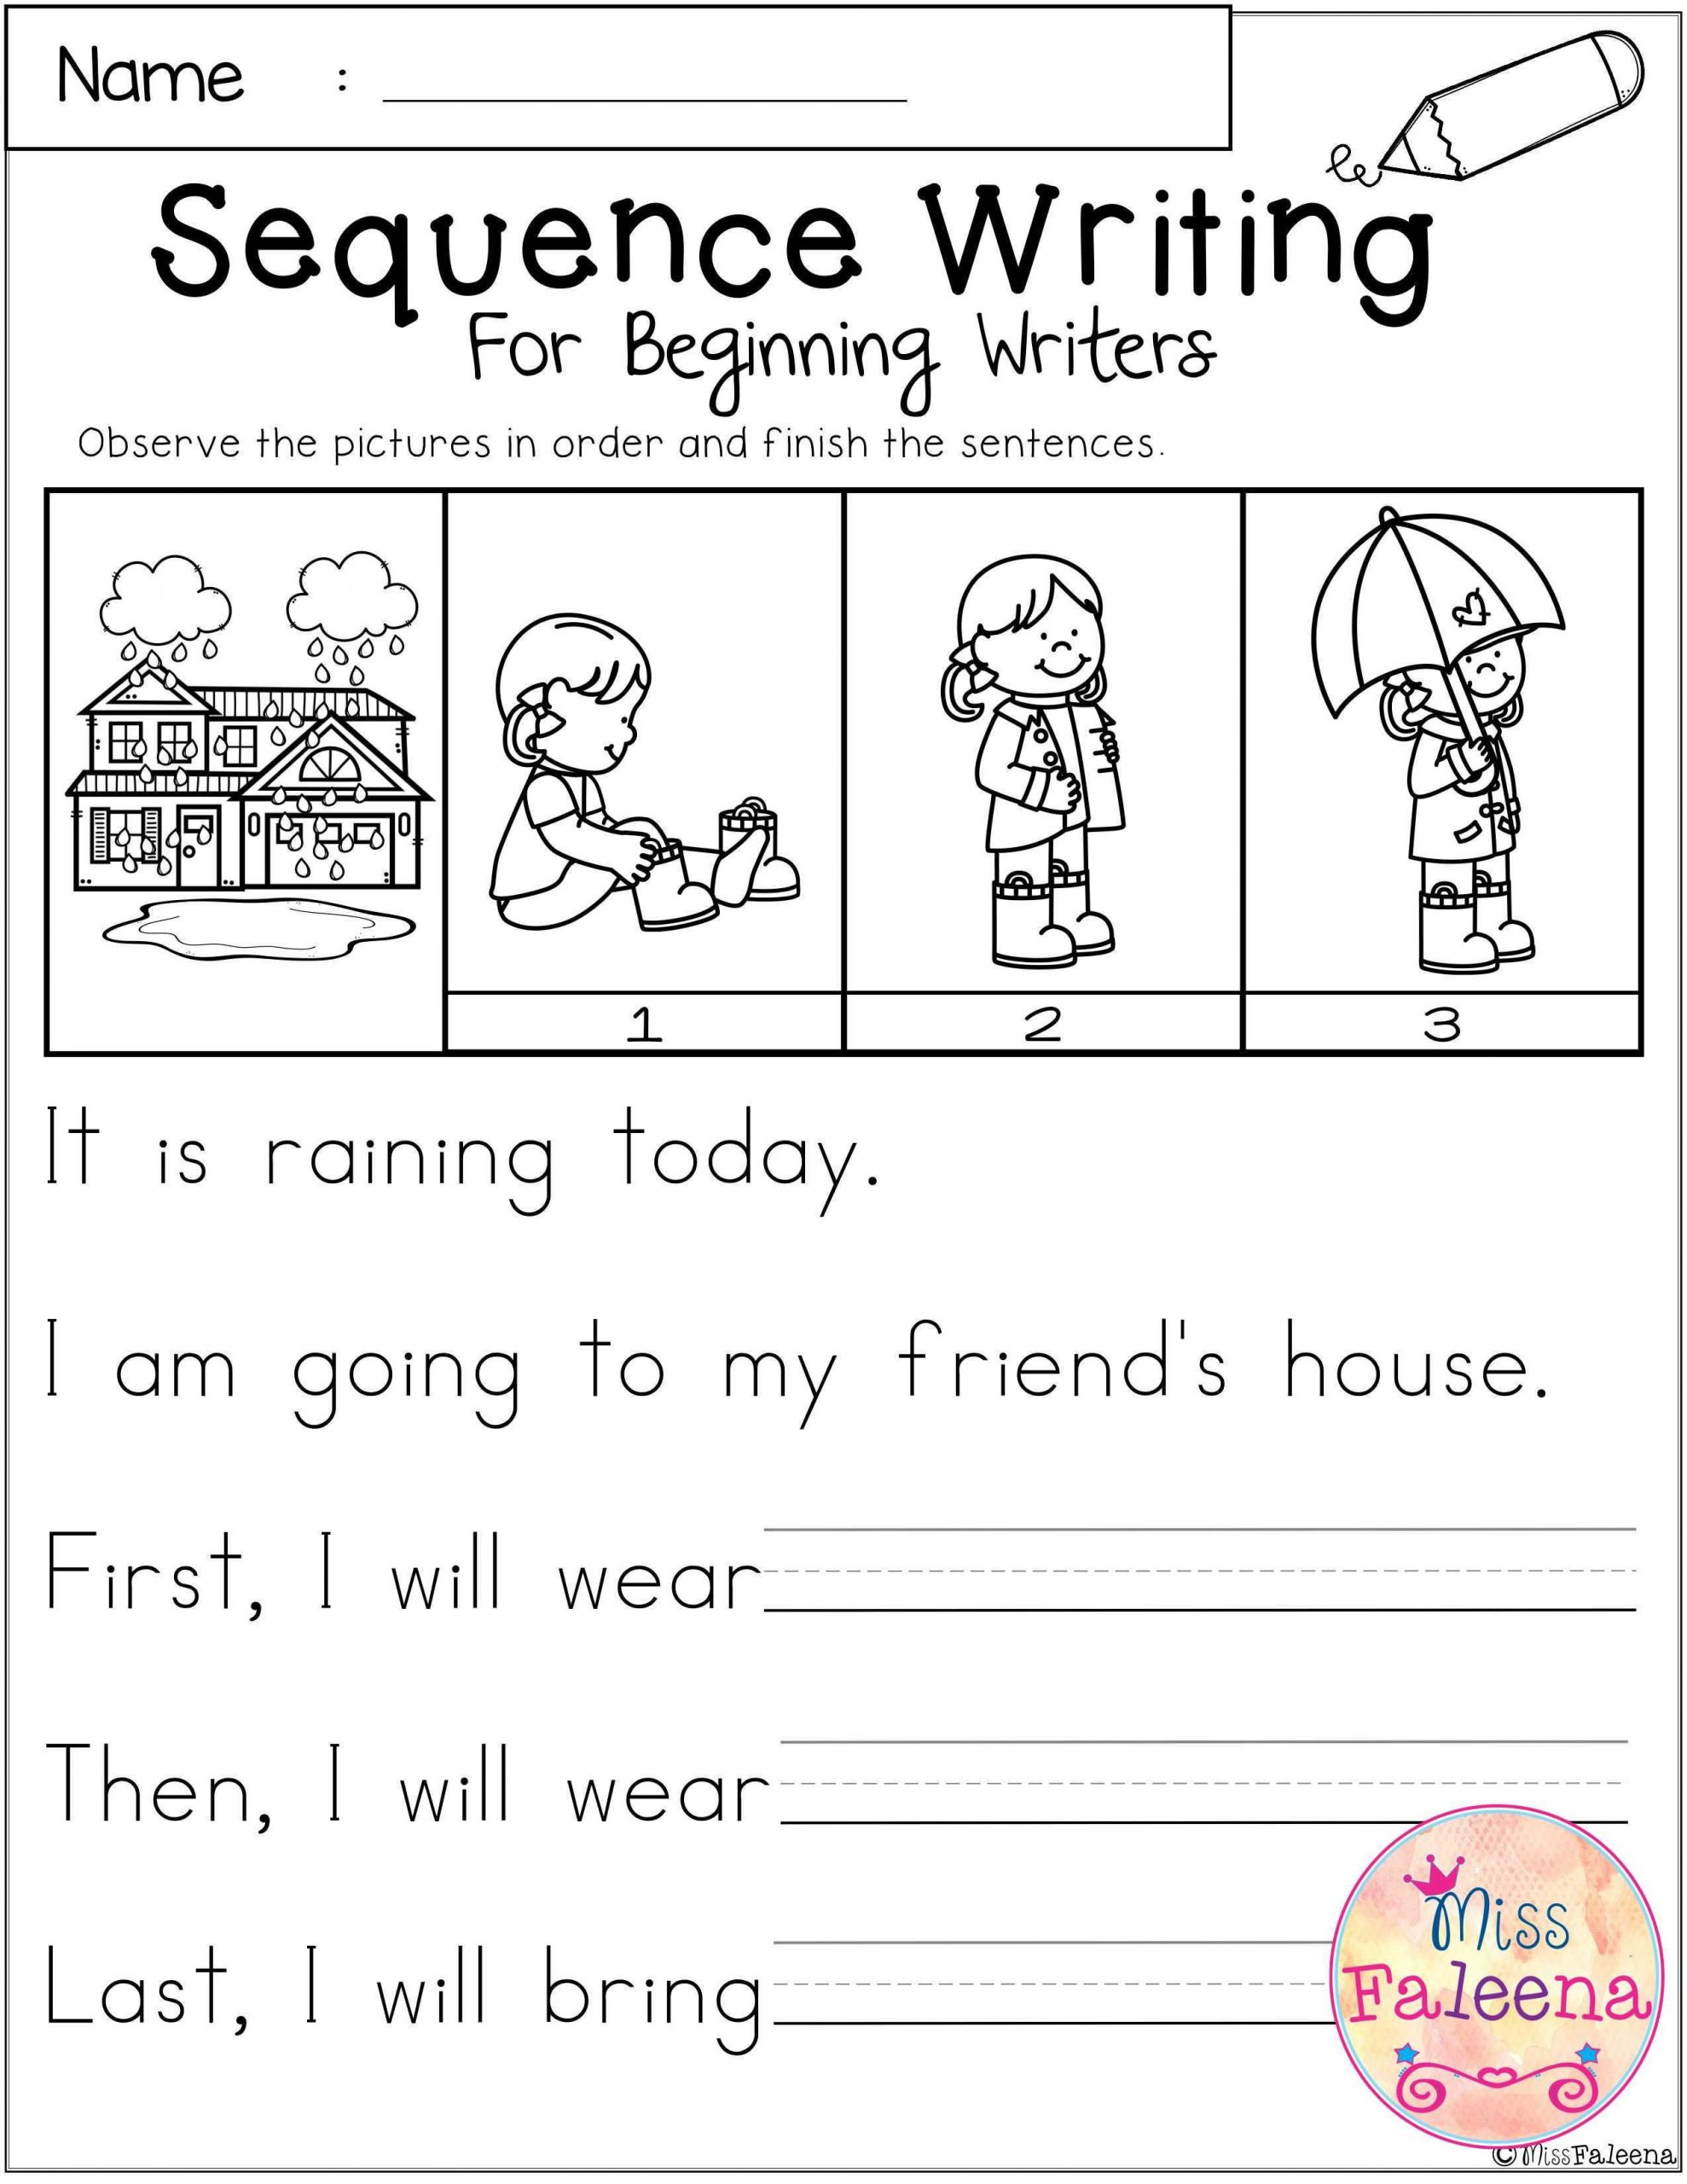 Printable Sequence Worksheets March Sequence Writing for Beginning Writers